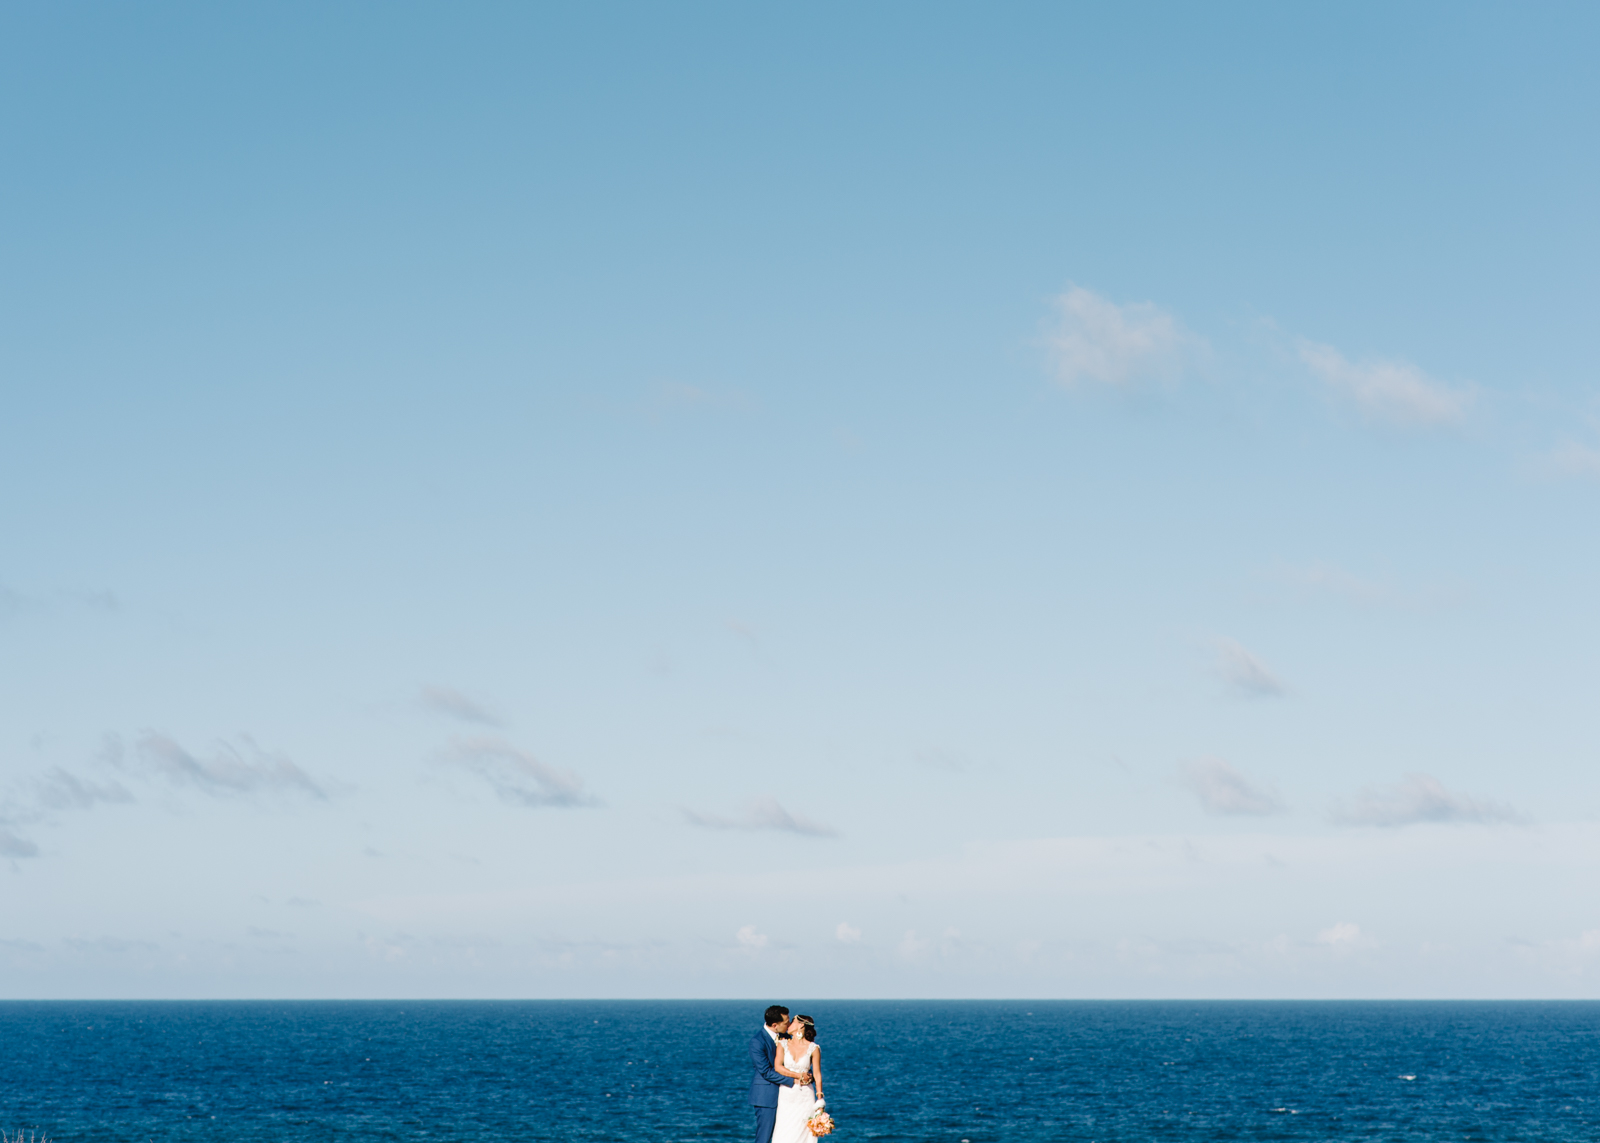 tara mcmullen photography amsterdam manor hotel wedding in aruba best wedding venue in aruba destination wedding photographer aruba indian wedding in aruba-013